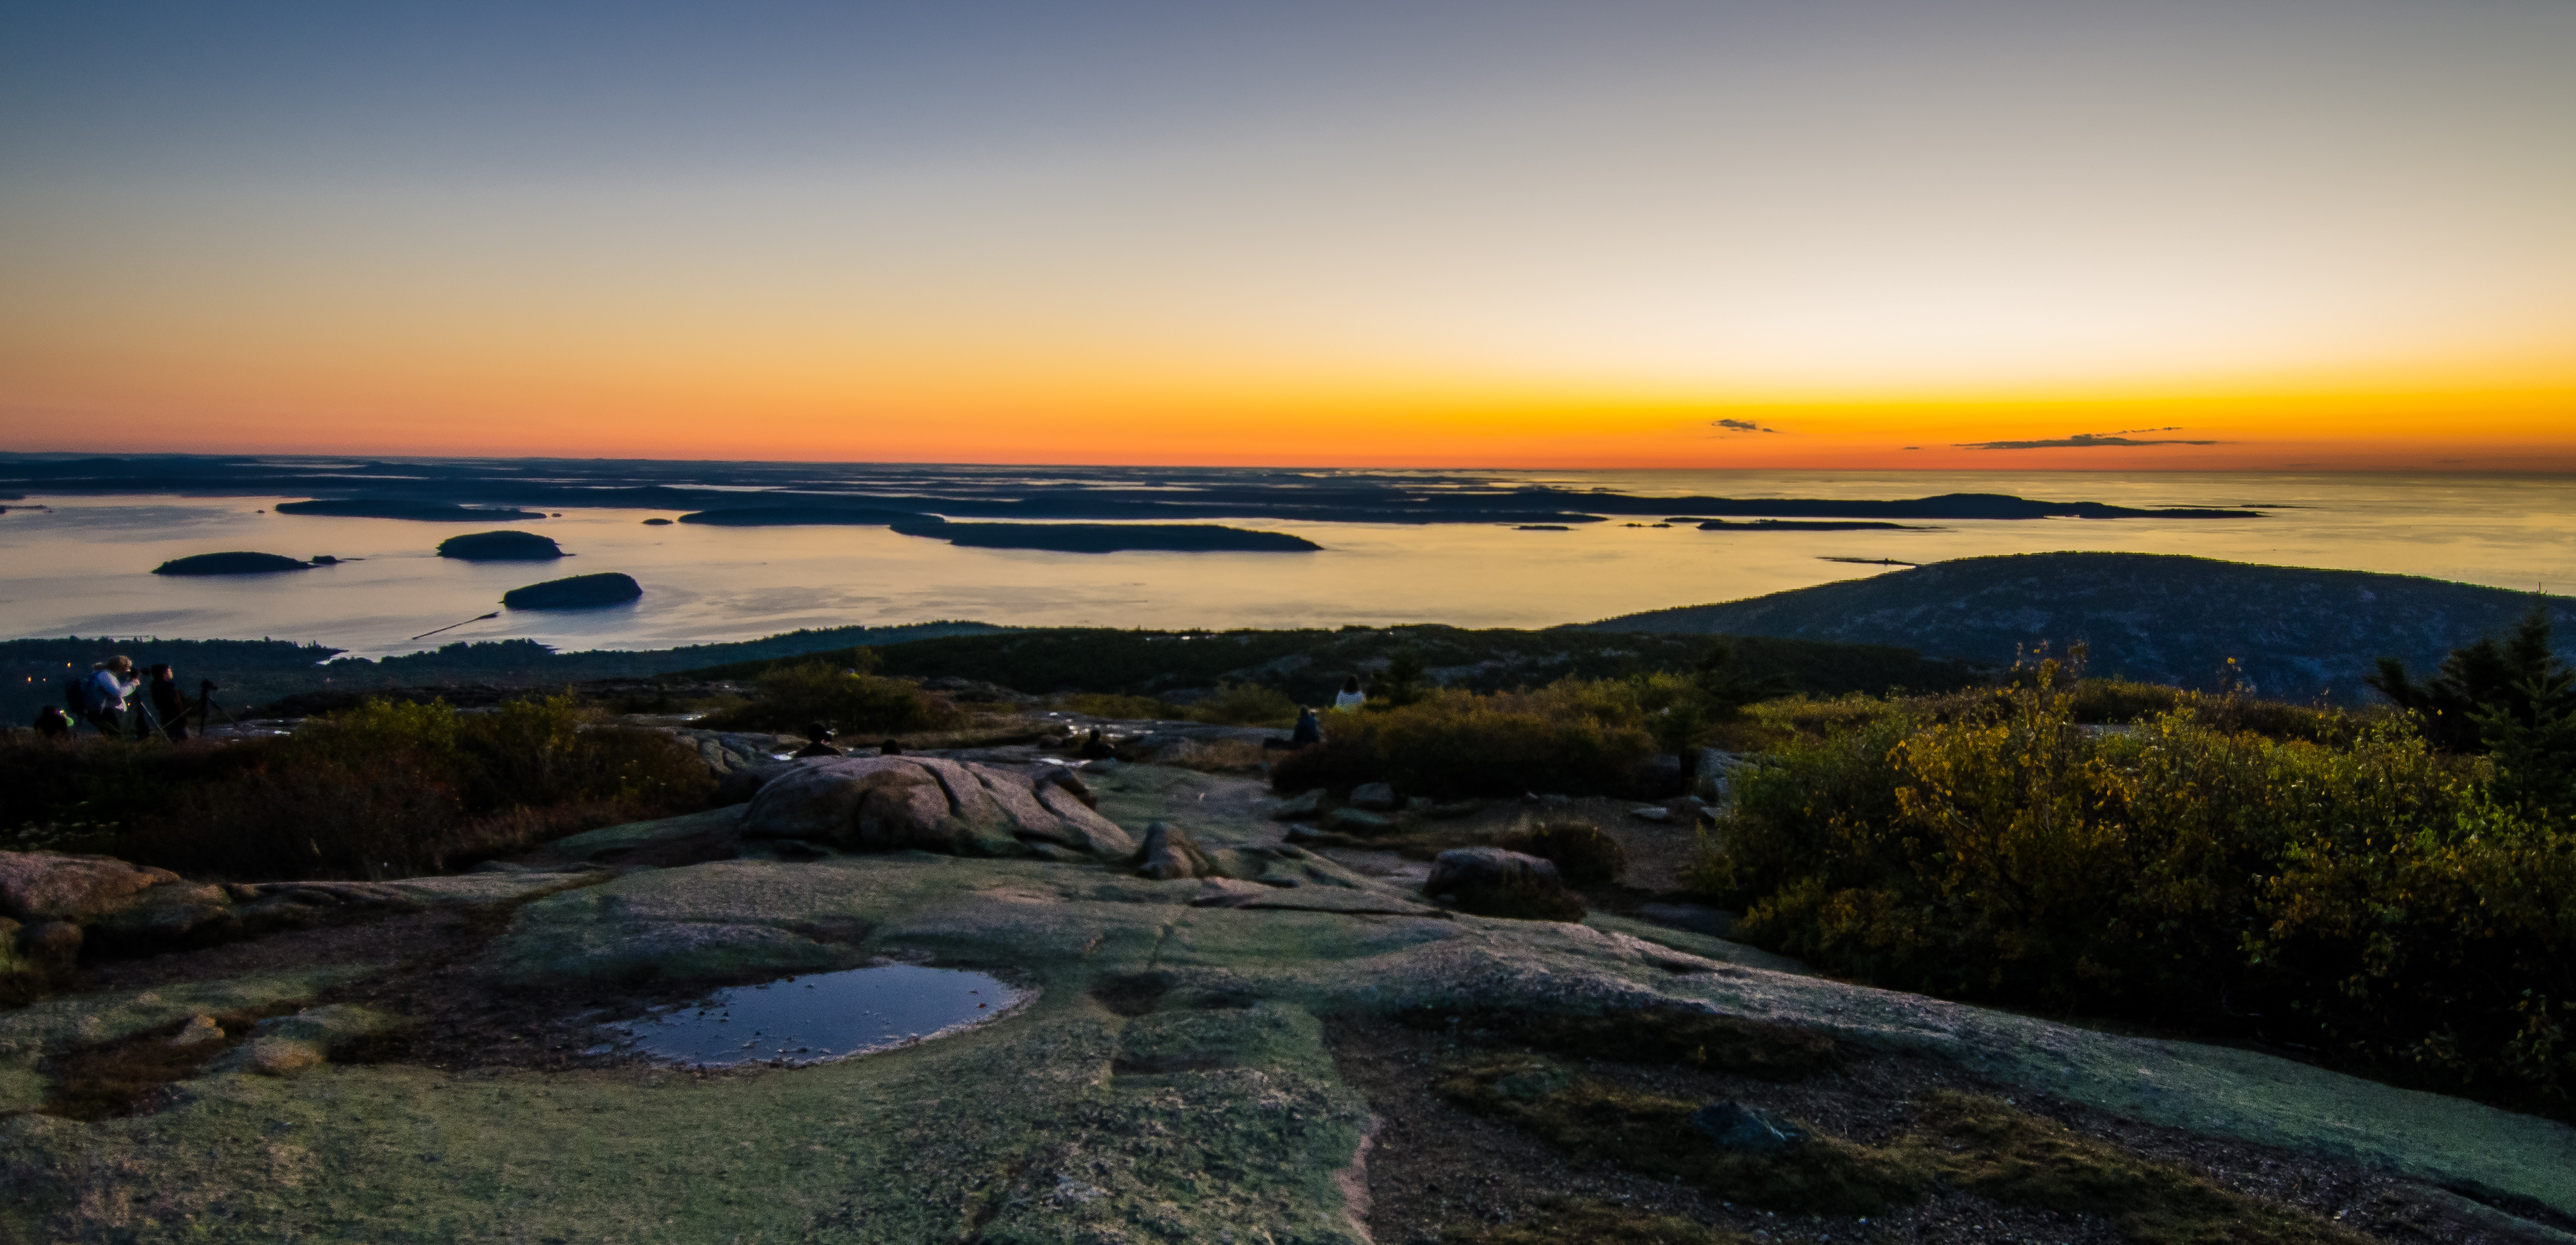 cadillac mountain sunrise the hippest pics. Cars Review. Best American Auto & Cars Review